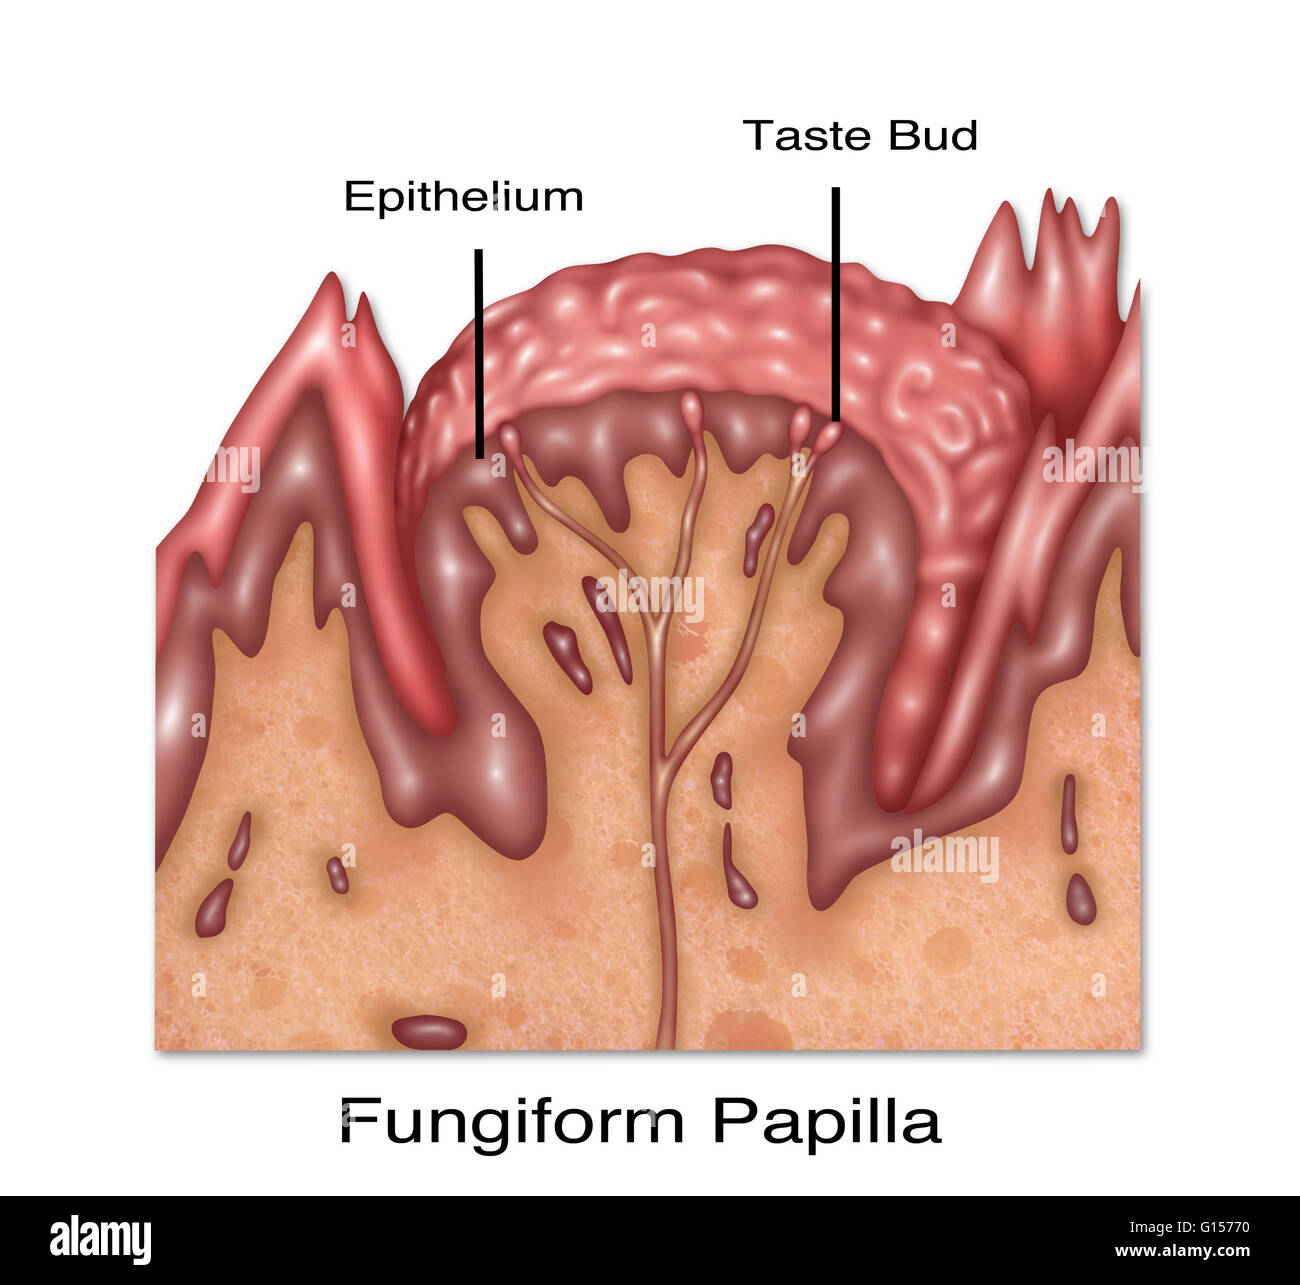 Lingual Papilla And Taste Buds Stock Photos Lingual Papilla And